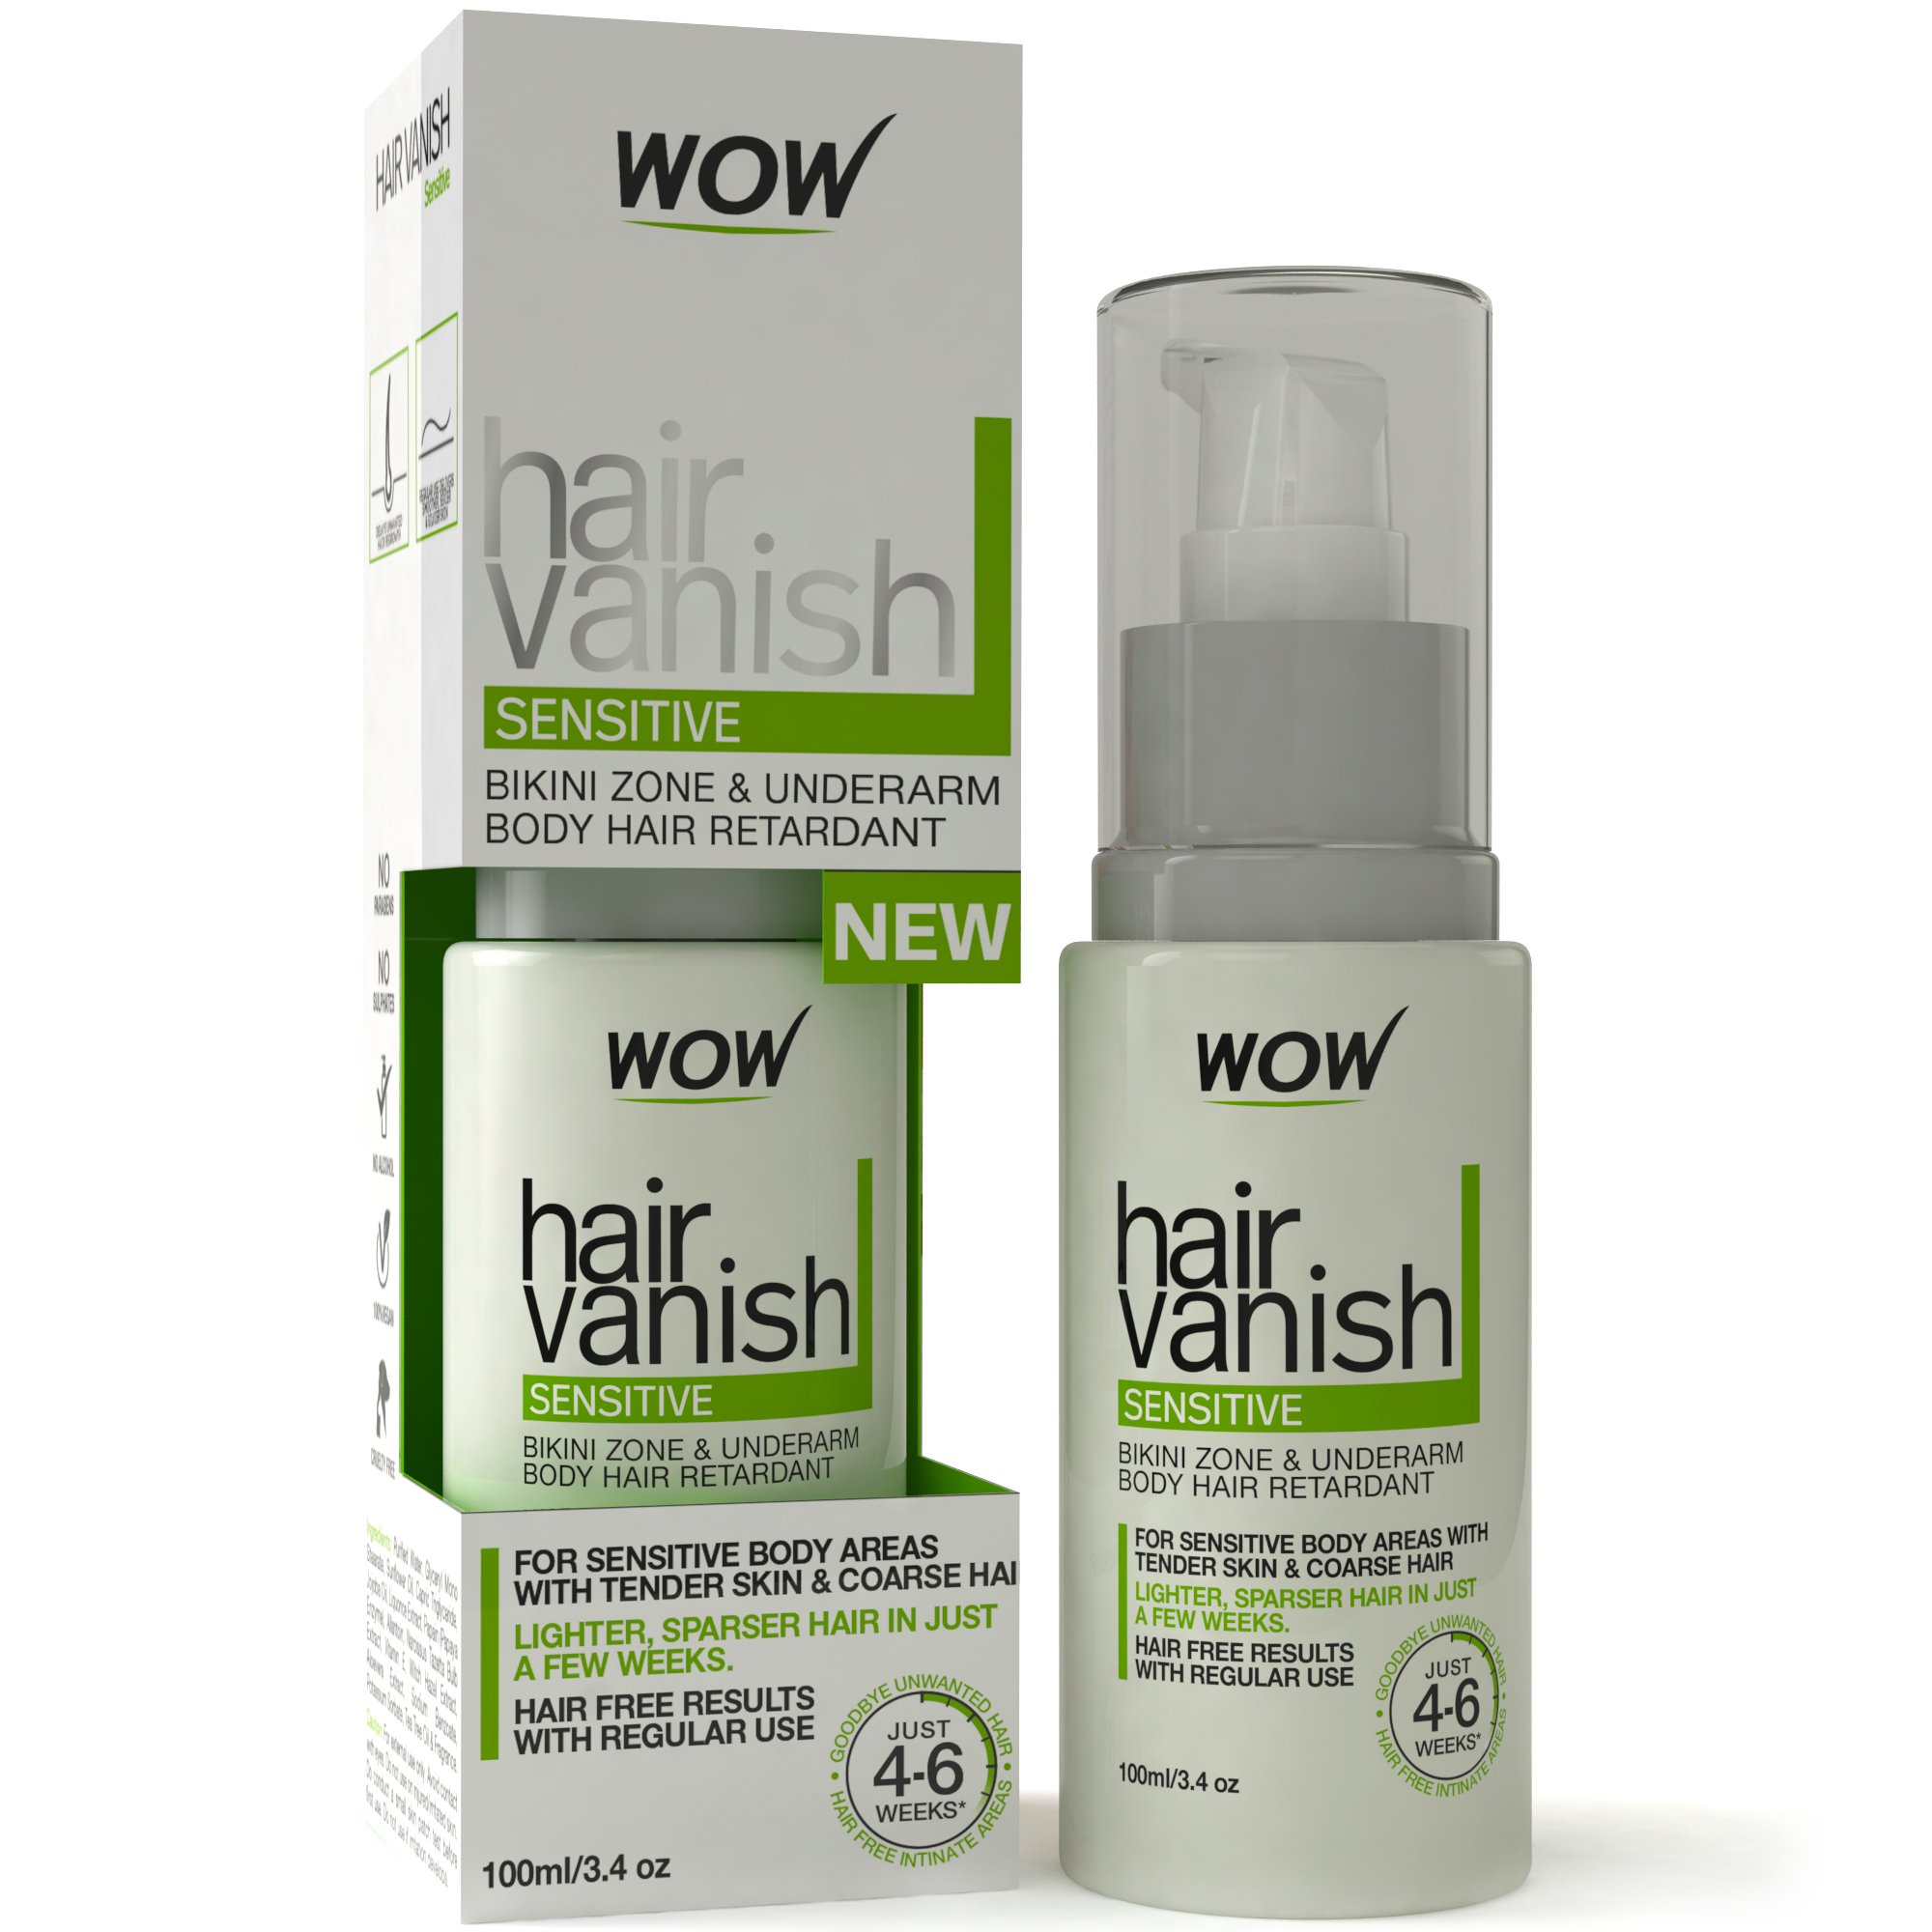 Wow Hair Vanish Sensitive - All-Natural Hair Growth Inhibitor for Sensitive Areas Like Bikini and Underarms. Reduces Unwanted Hair Re-Growth - Aloe-Vera Extract - Jojoba Oil - Vitamin E - 3.4 fl oz